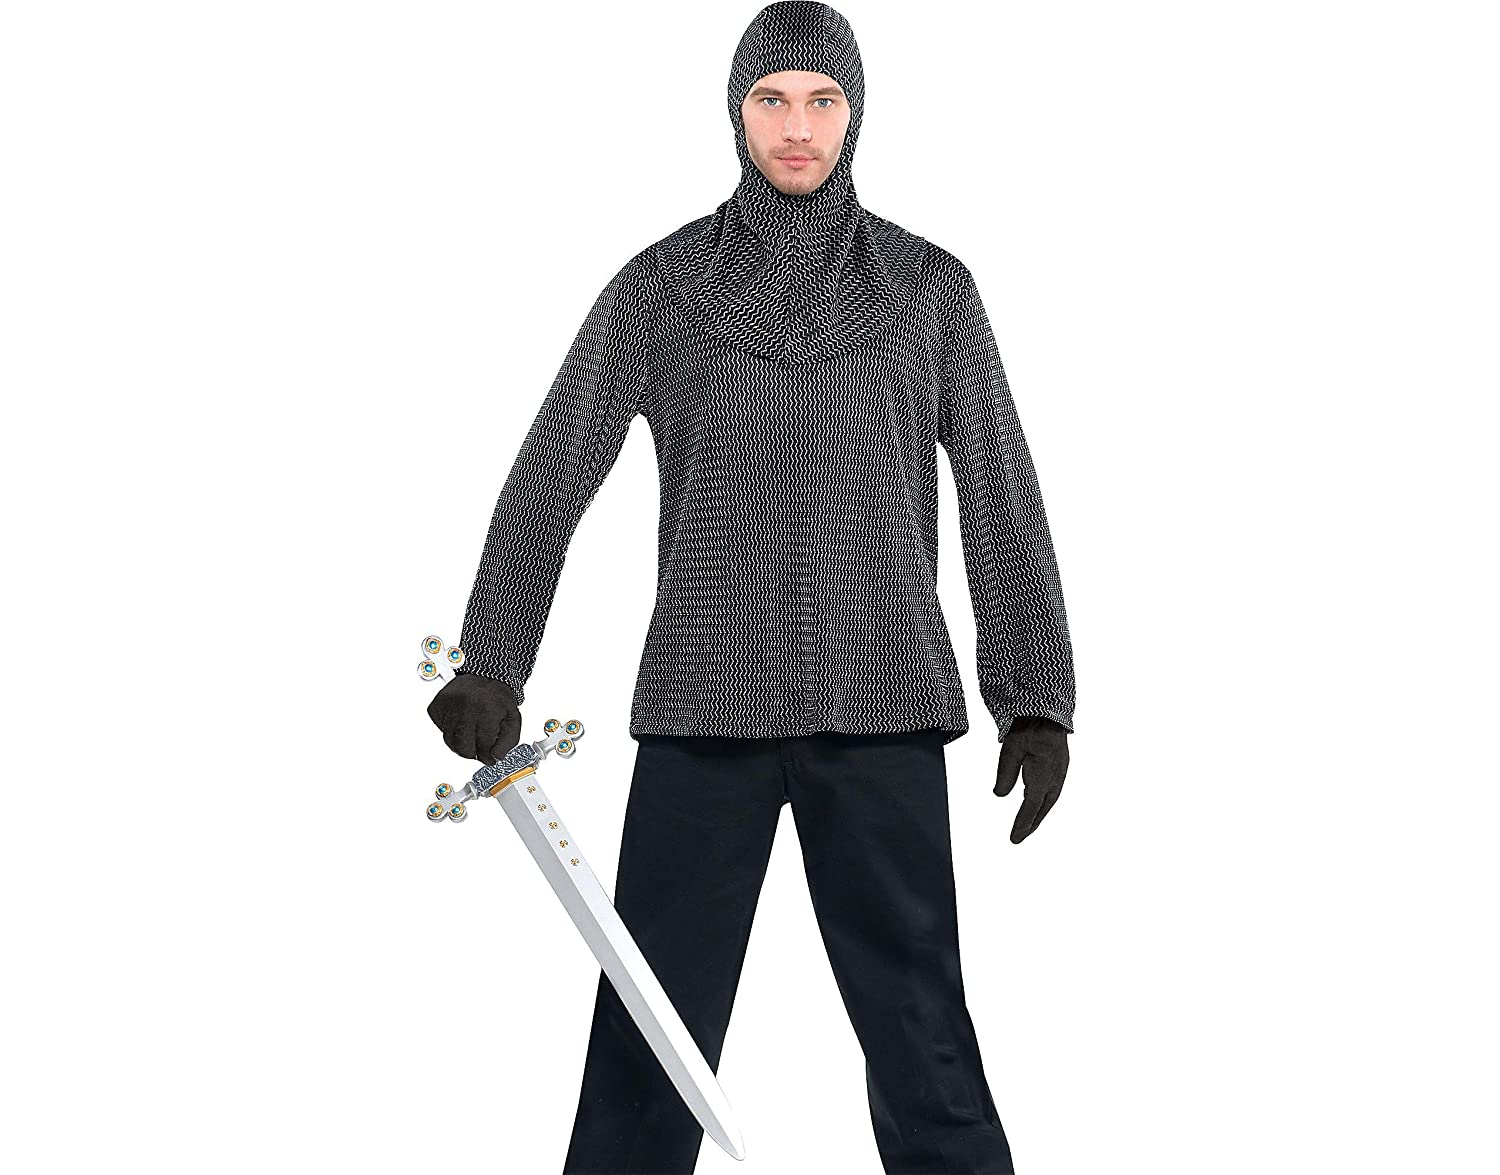 59da803453466 Mens Medieval Knight Chain Mail look Tunic with Coif Hood Fancy Dress  Accessory  Amazon.co.uk  Toys   Games